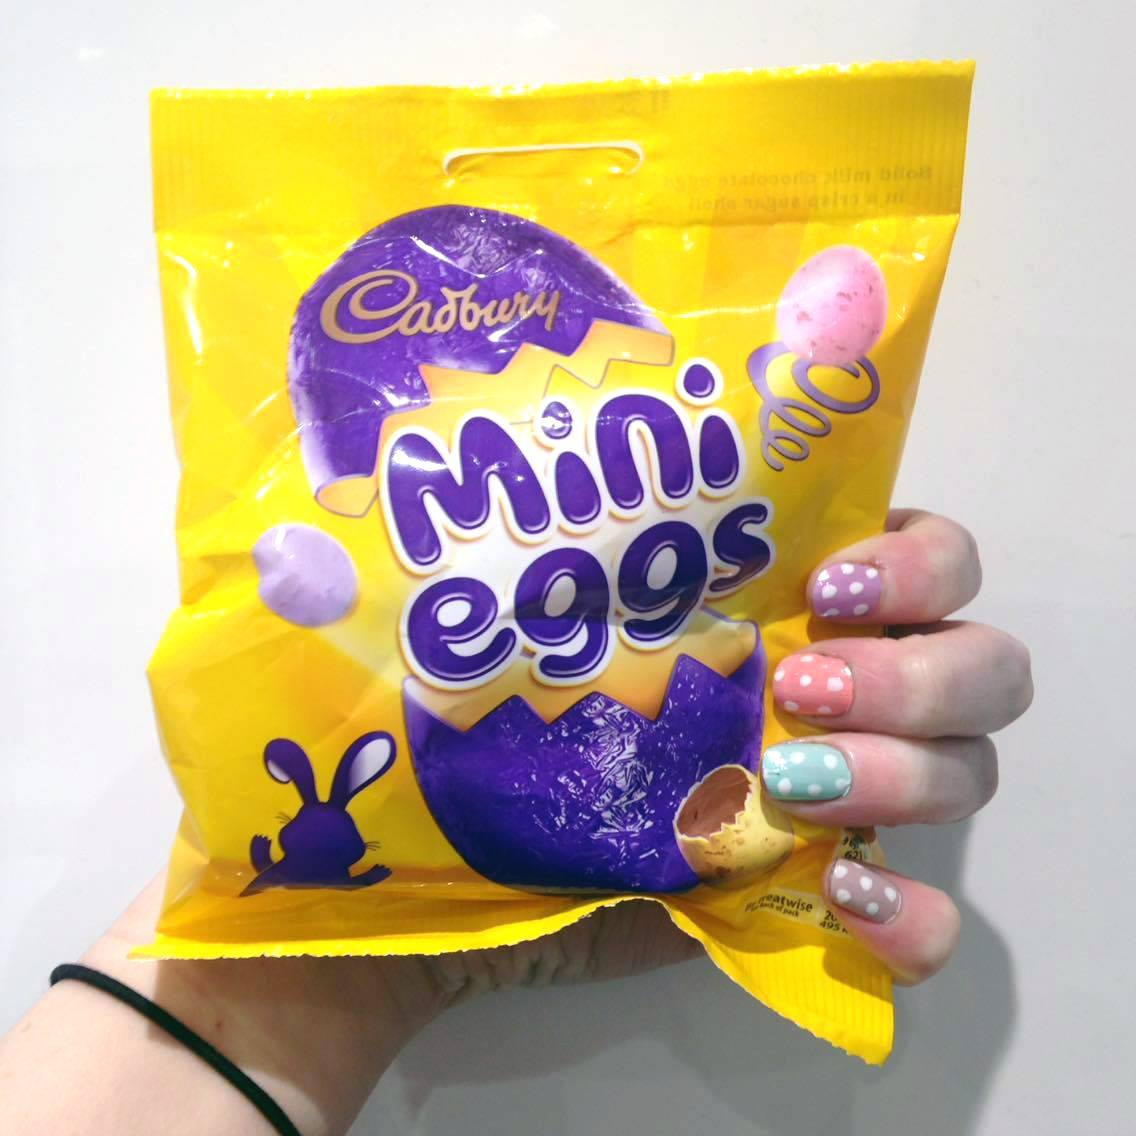 Standard Easter photo of mini eggs and Easter inspired nails.